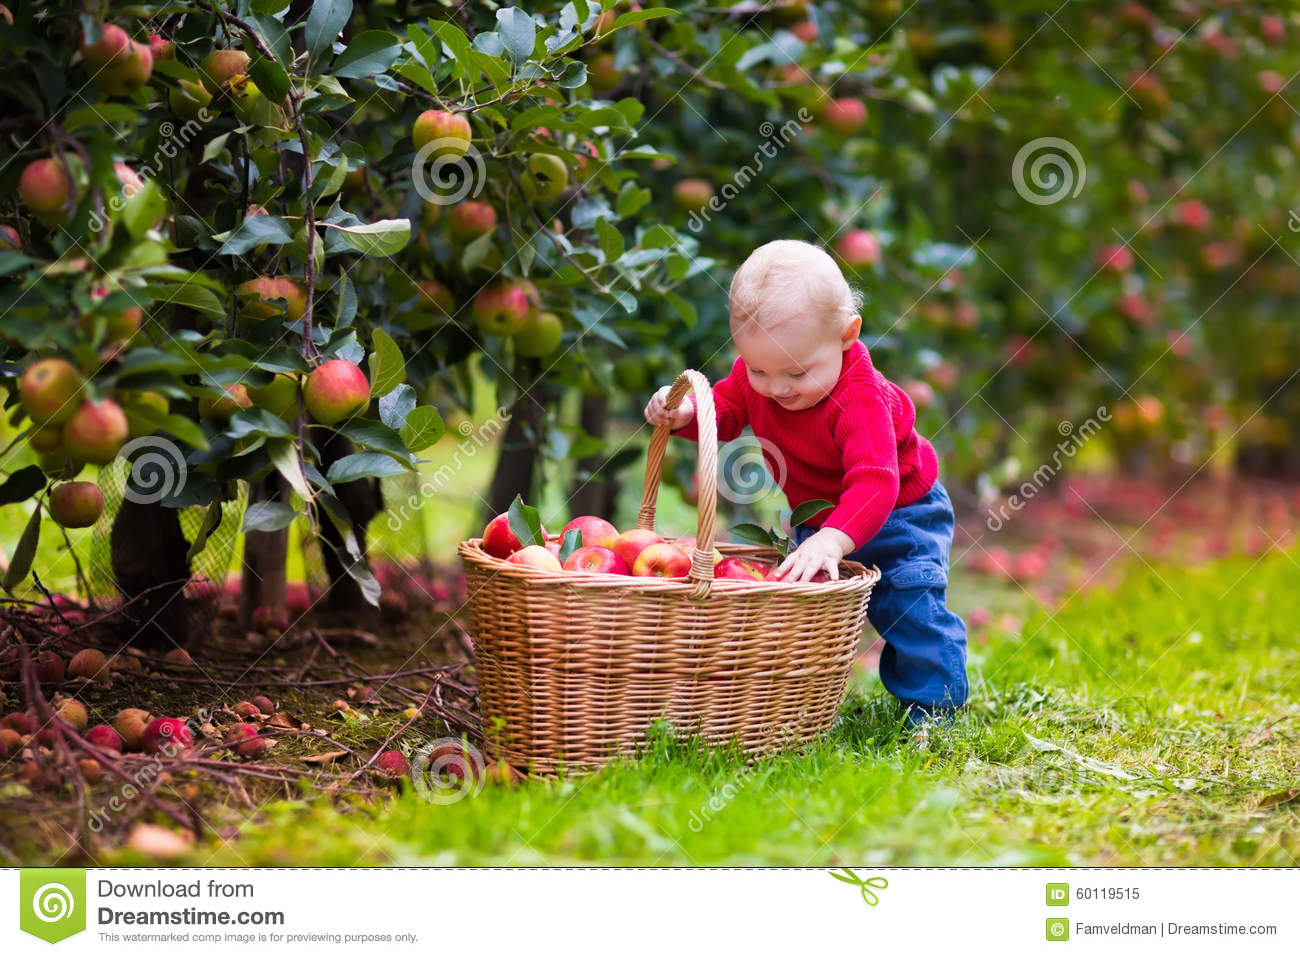 Cute Baby Boy Picking Fresh Apples From Tree Stock Photo